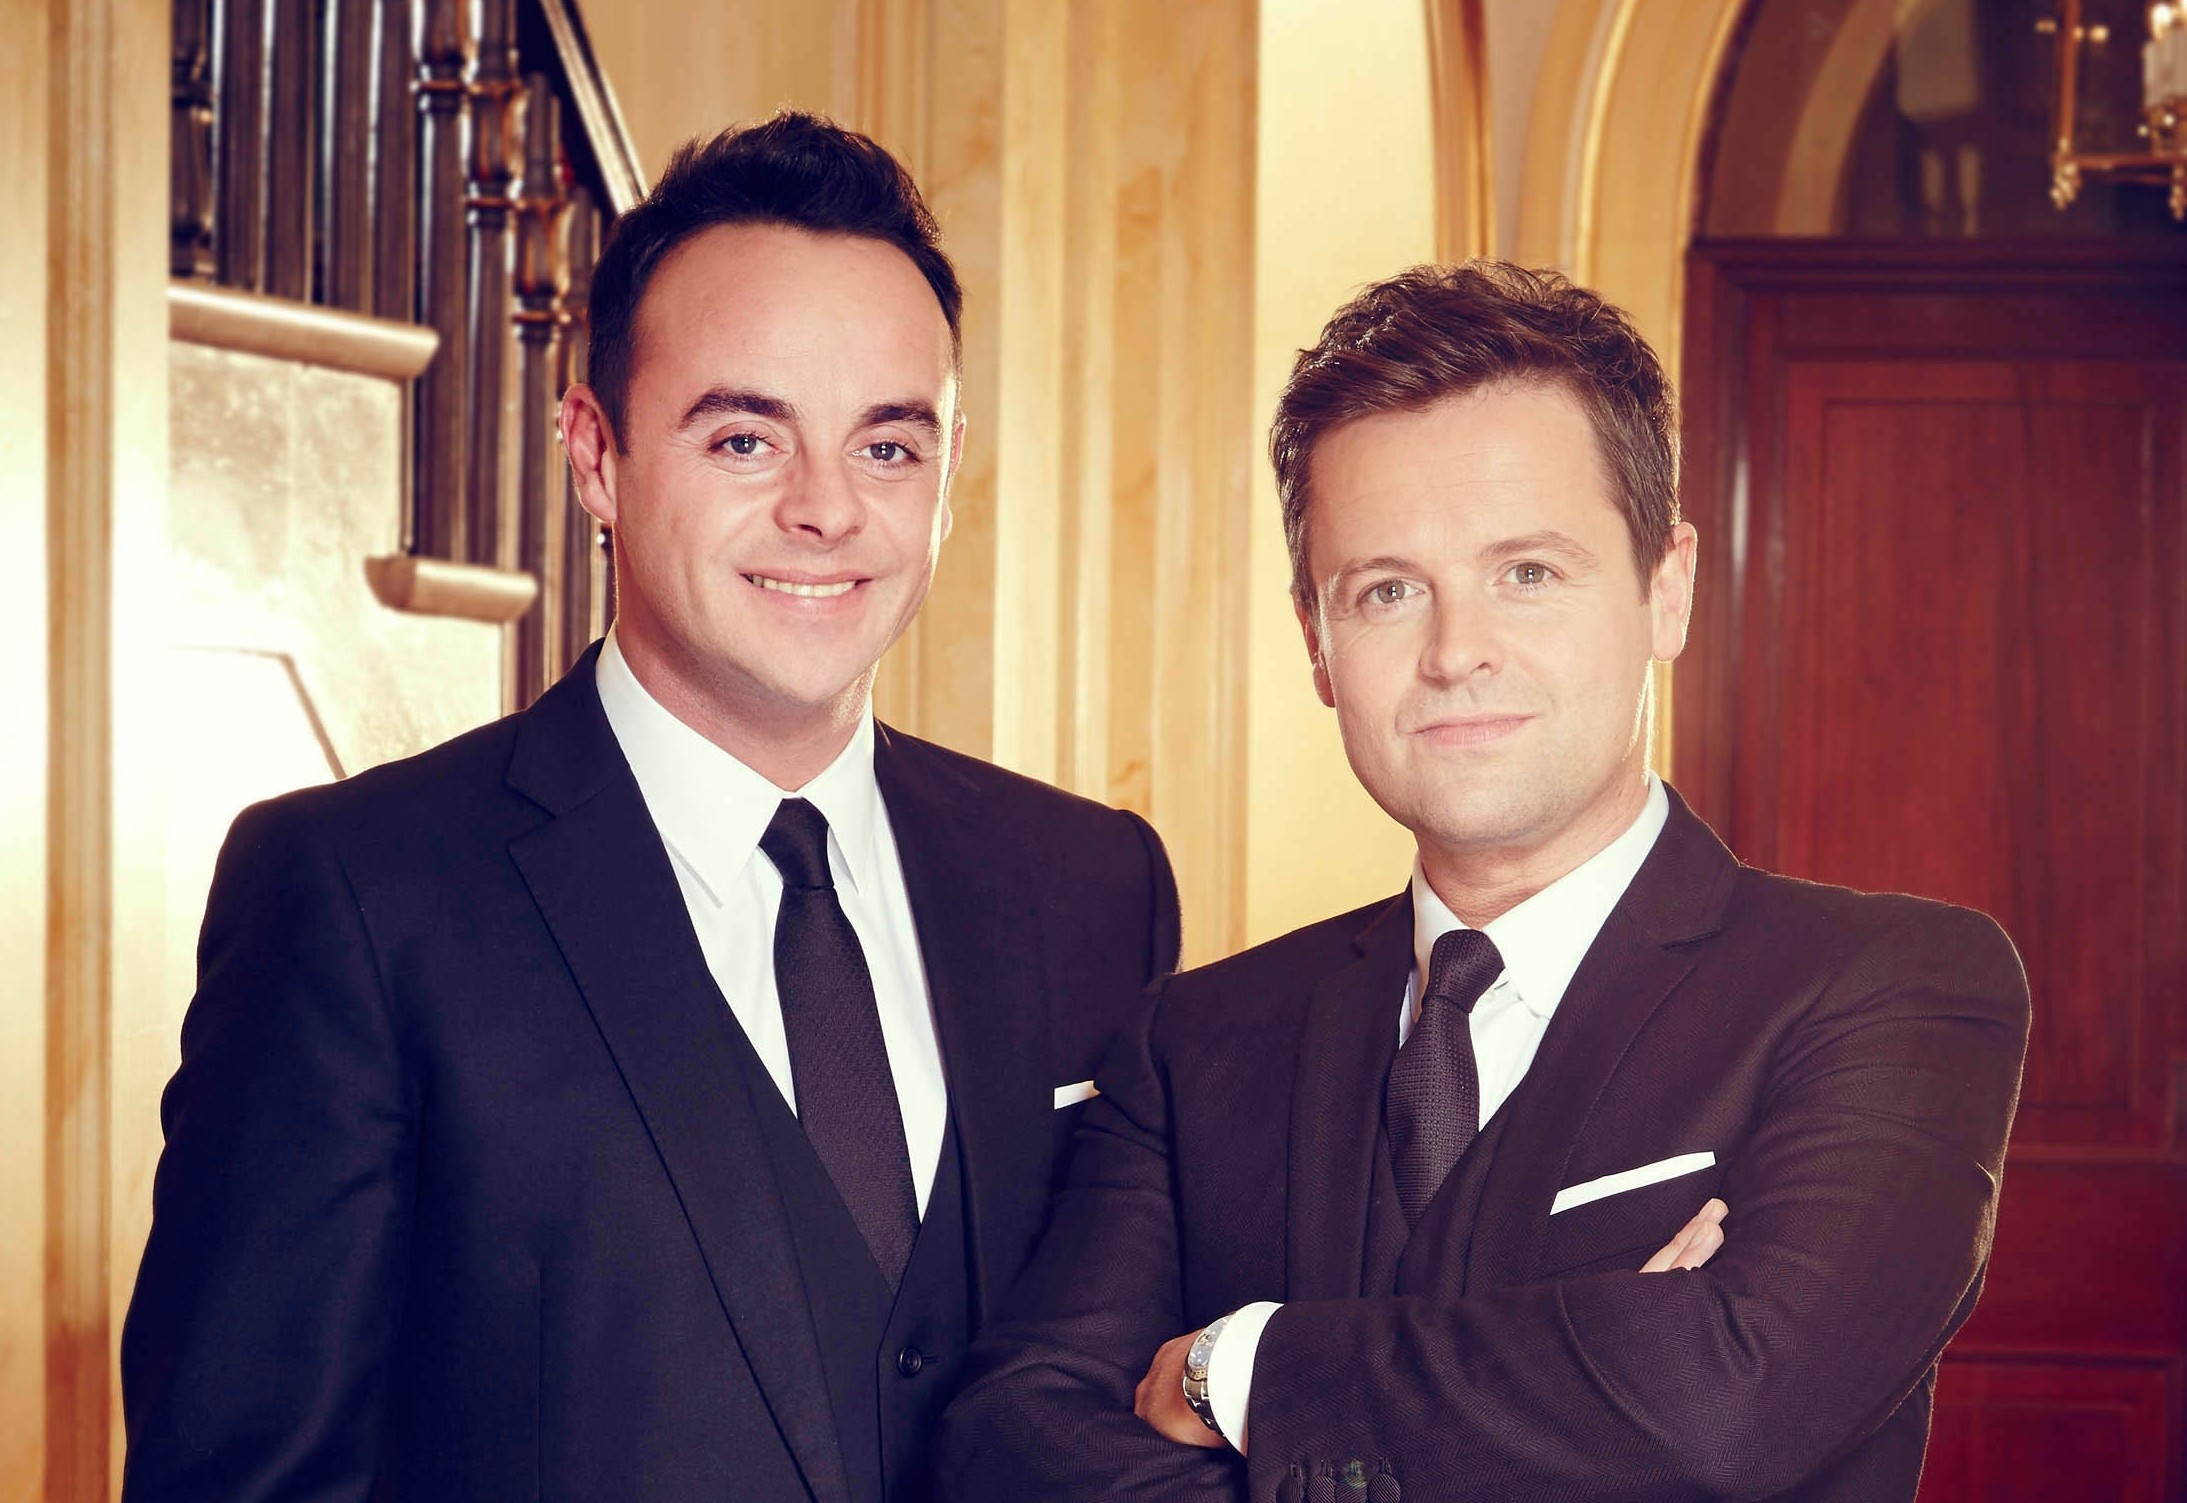 Ant and Dec, formerly known as PJ and Duncan